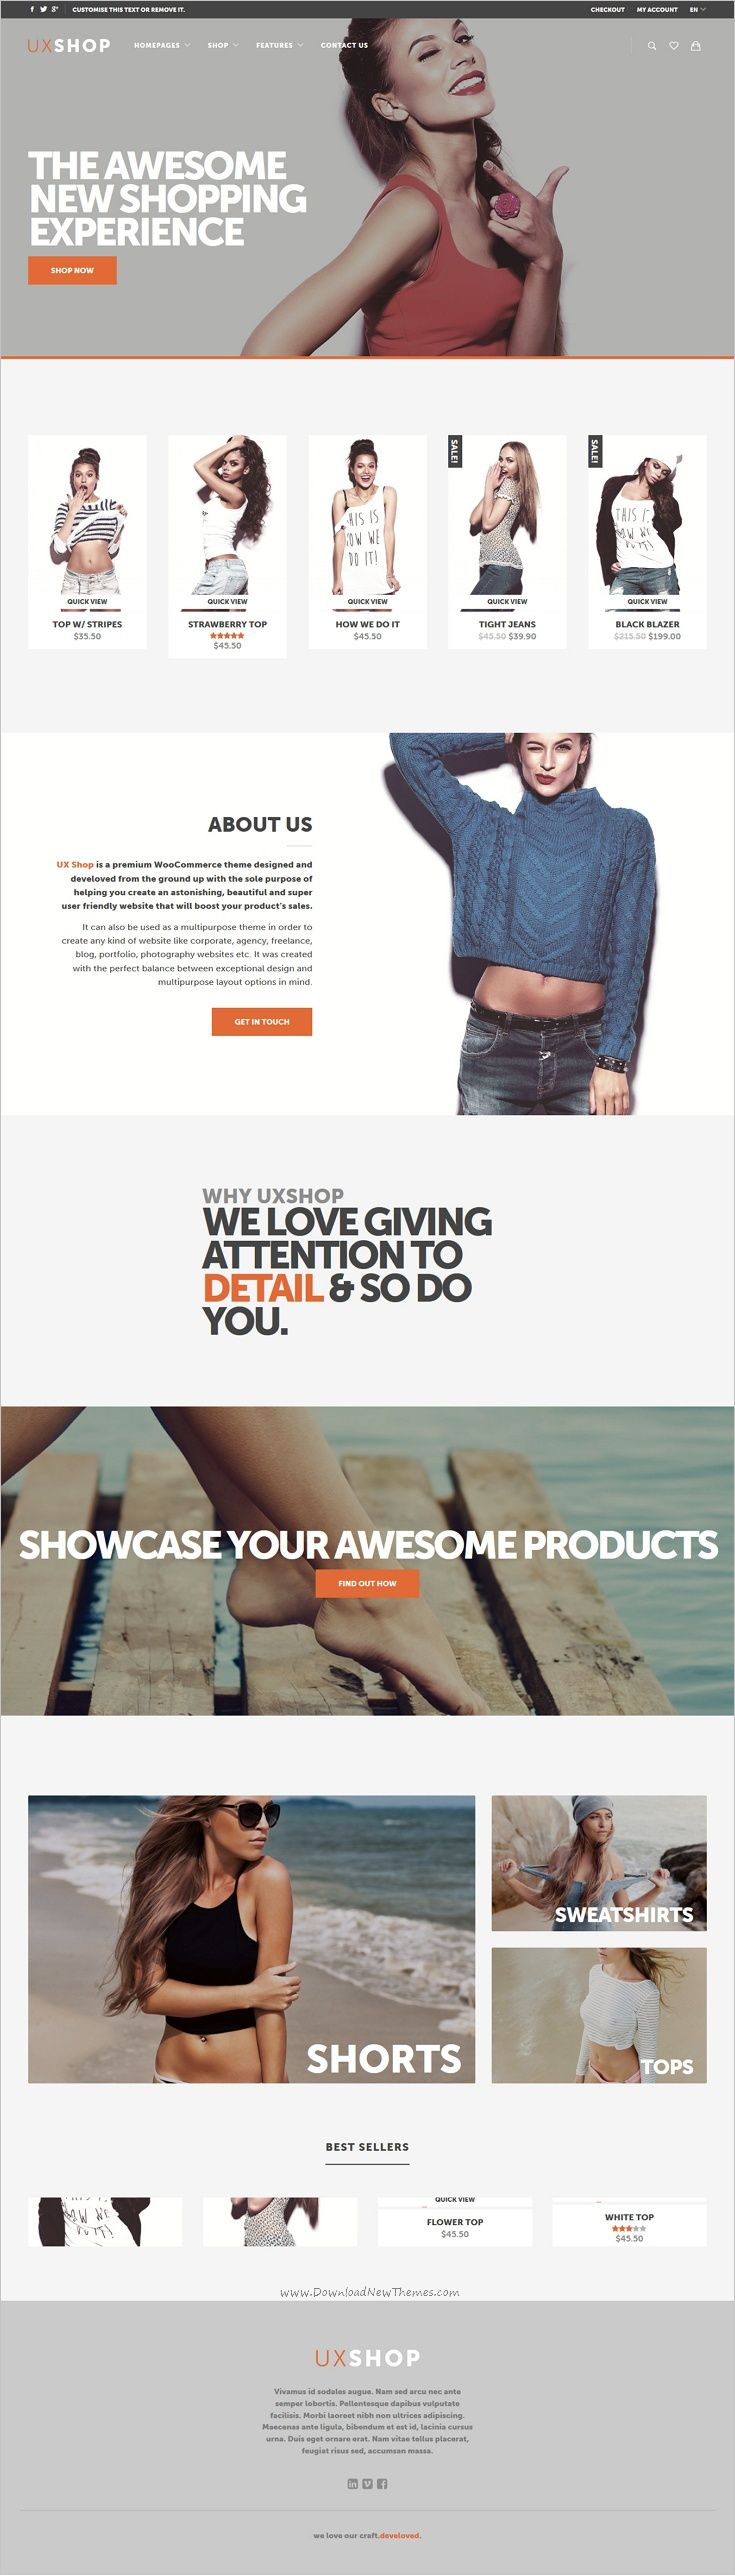 UX shop is a wonderful responsive #WooCommerce #WordPress theme for stunning #fashion store #eCommerce website download now➩ https://themeforest.net/item/ux-shop-responsive-woocommerce-theme/17392088?ref=Datasata